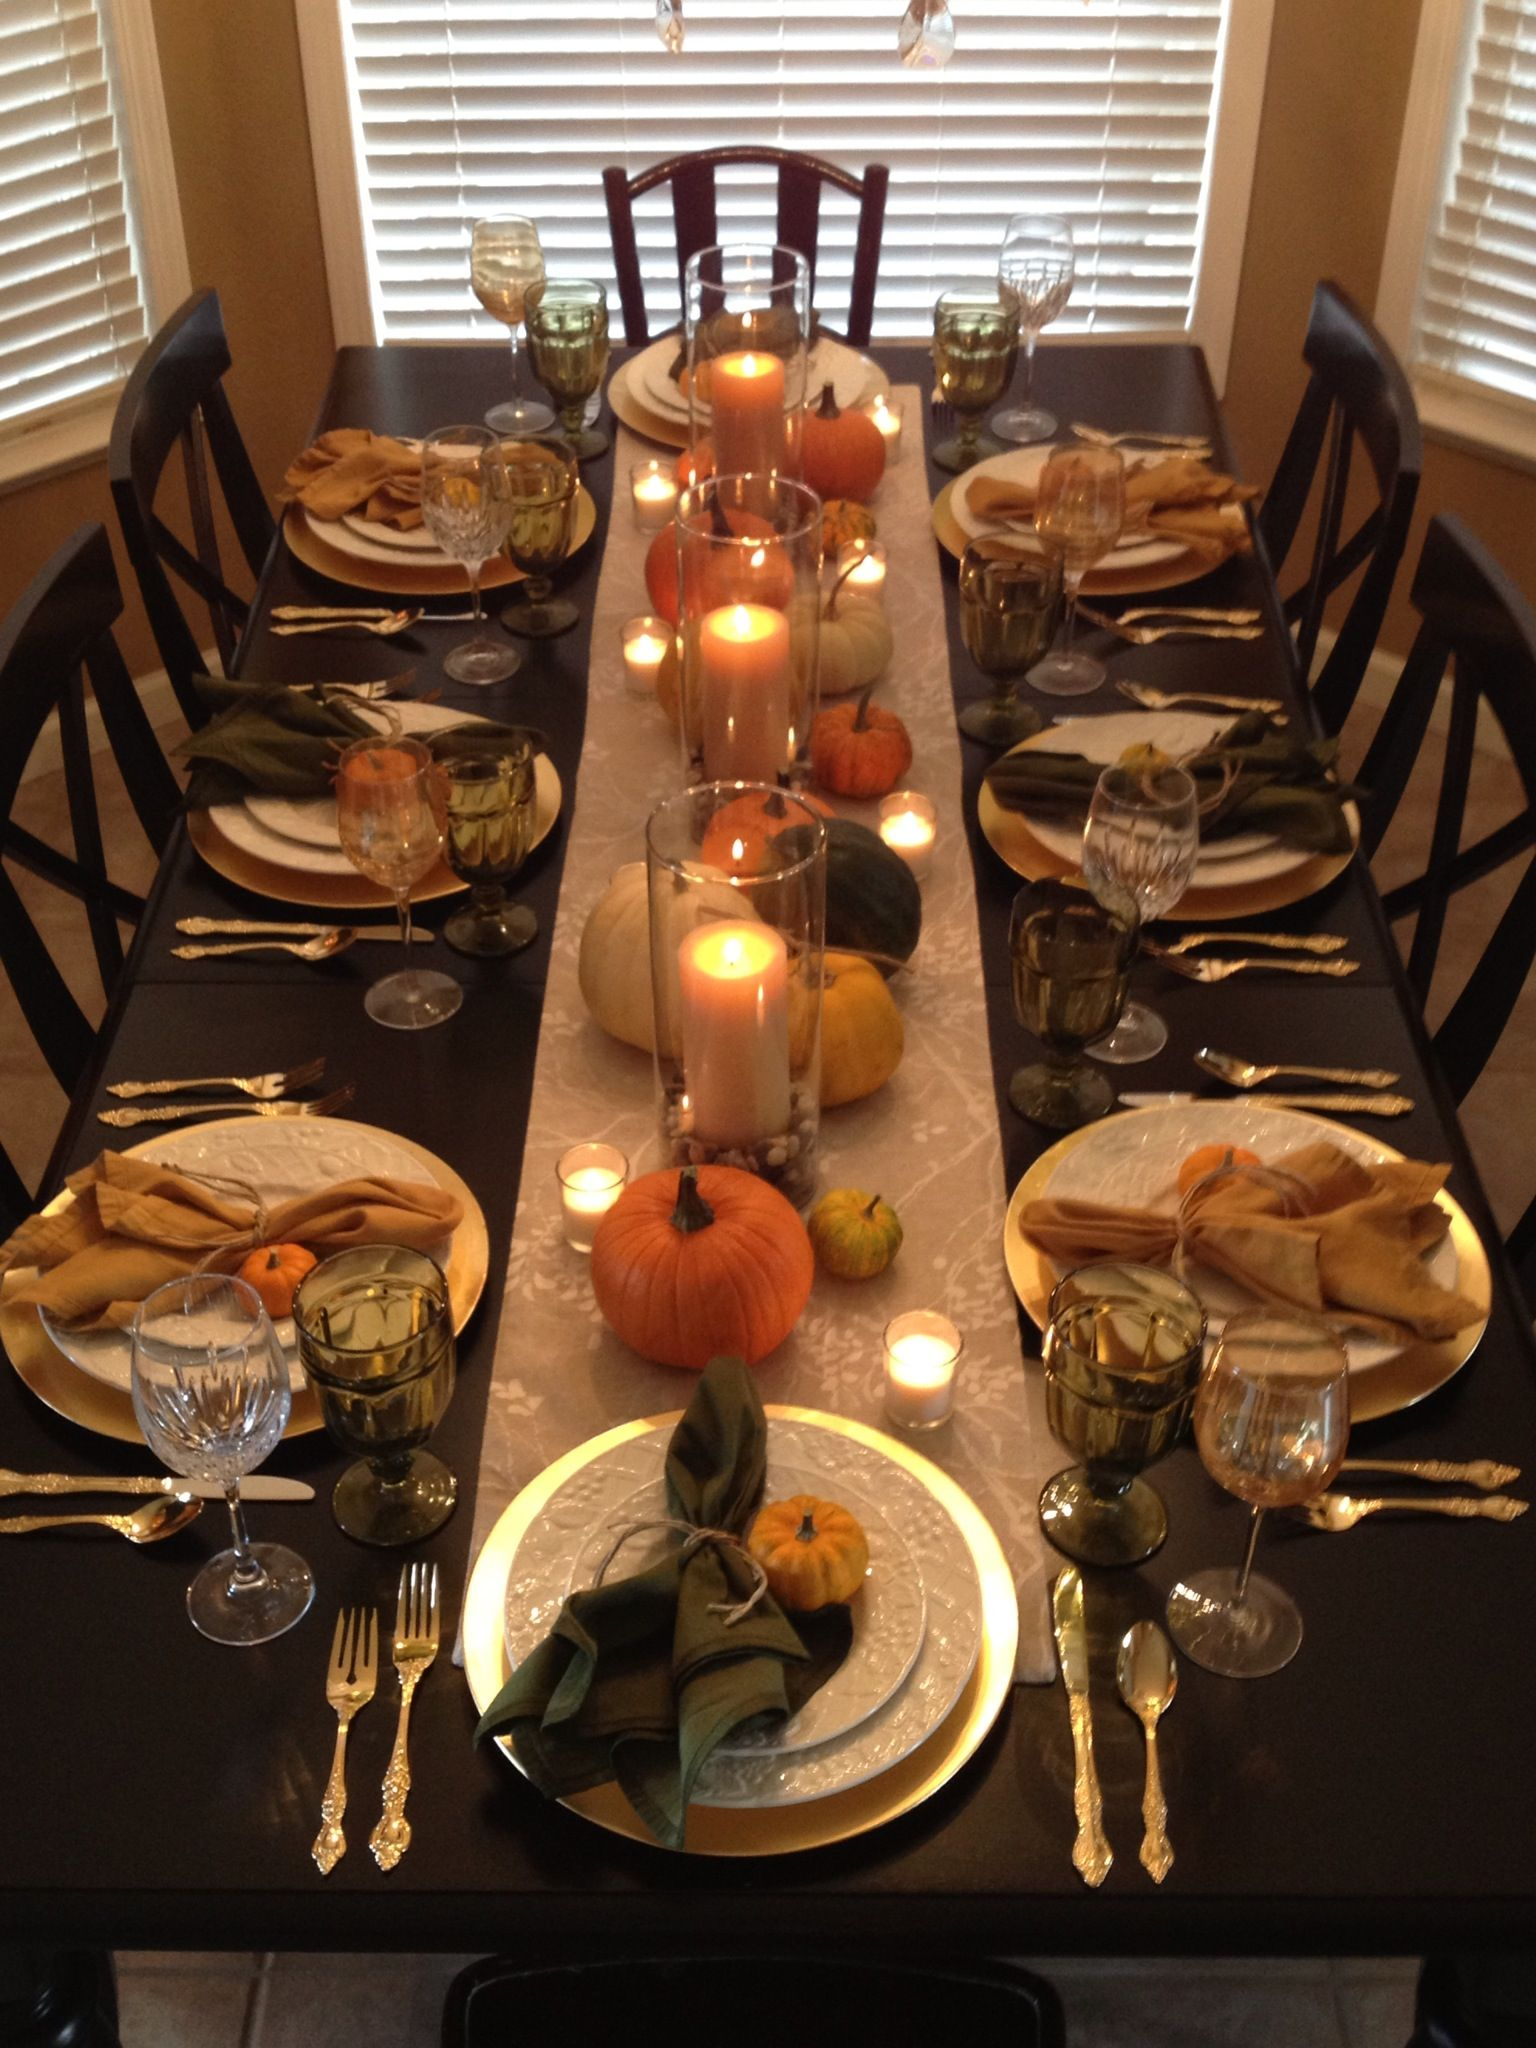 My Own Thanksgiving Table This Year Using Pinterest As My